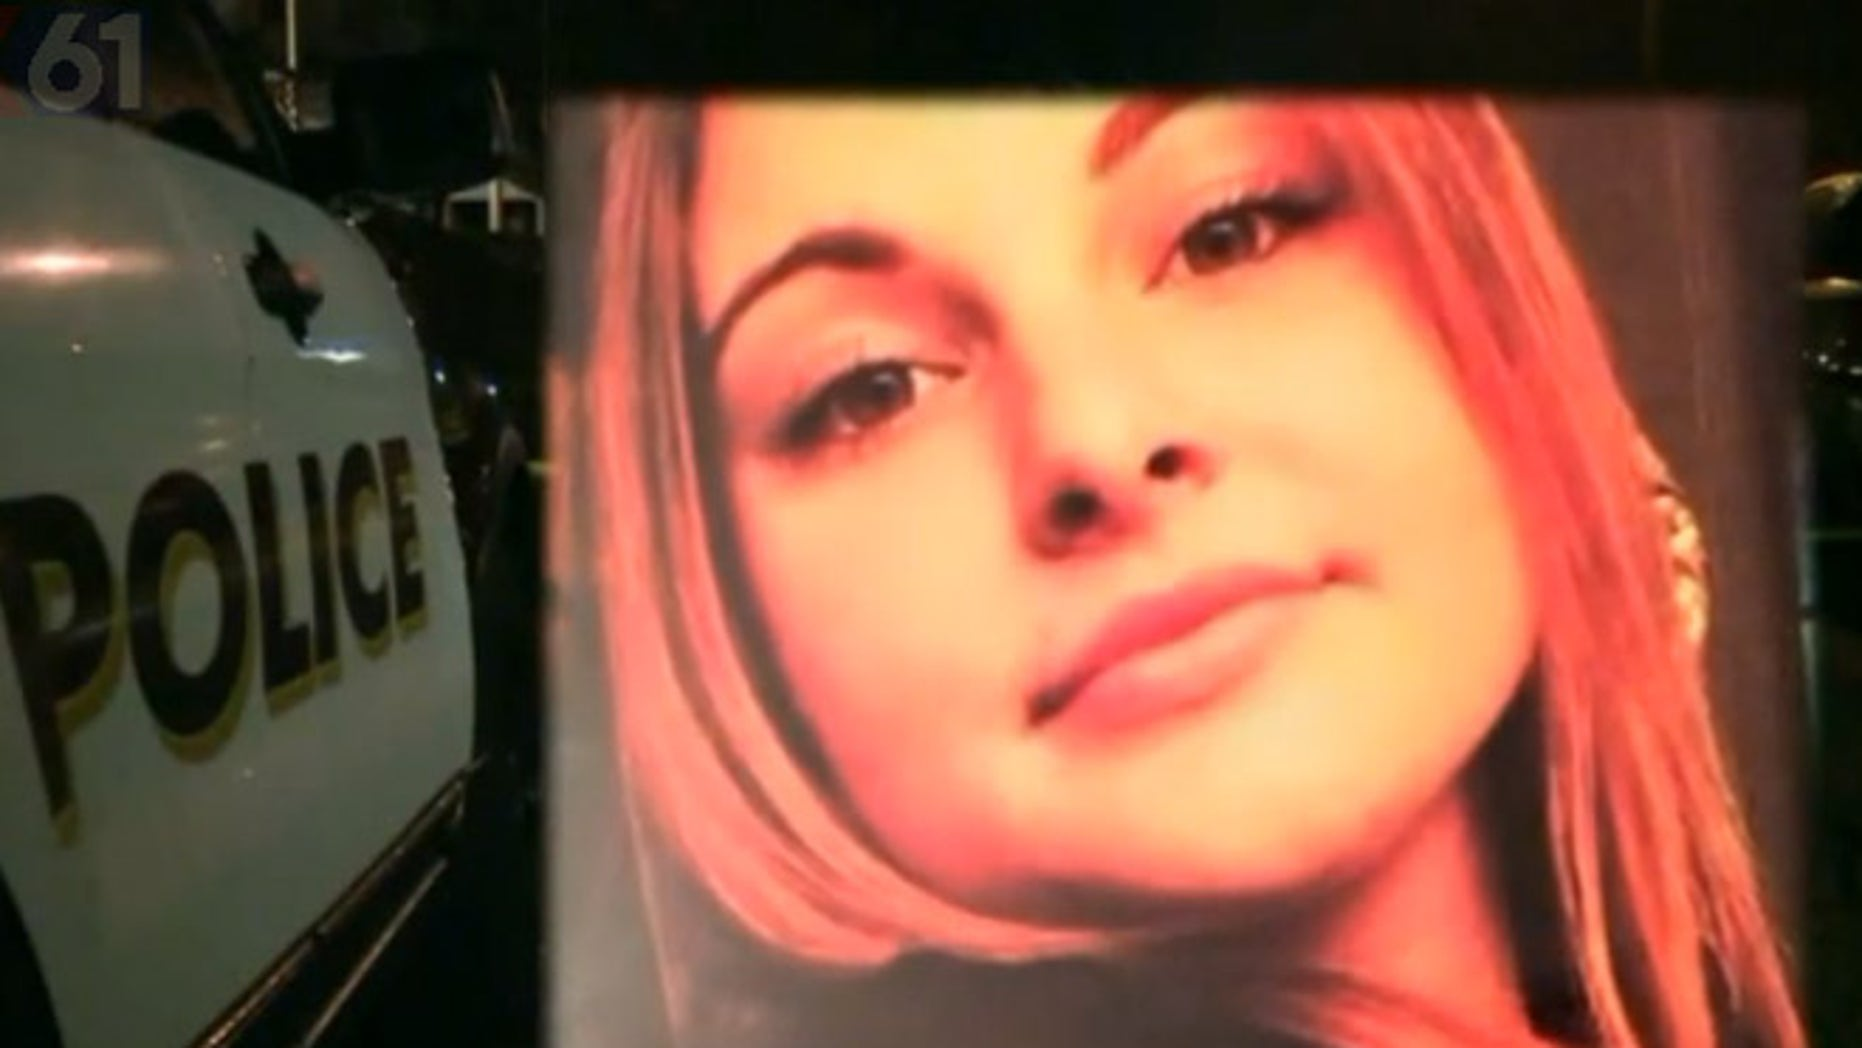 Casey Chadwick was killed just over a year ago in her Norwich, Conn., apartment. (Fox 61)